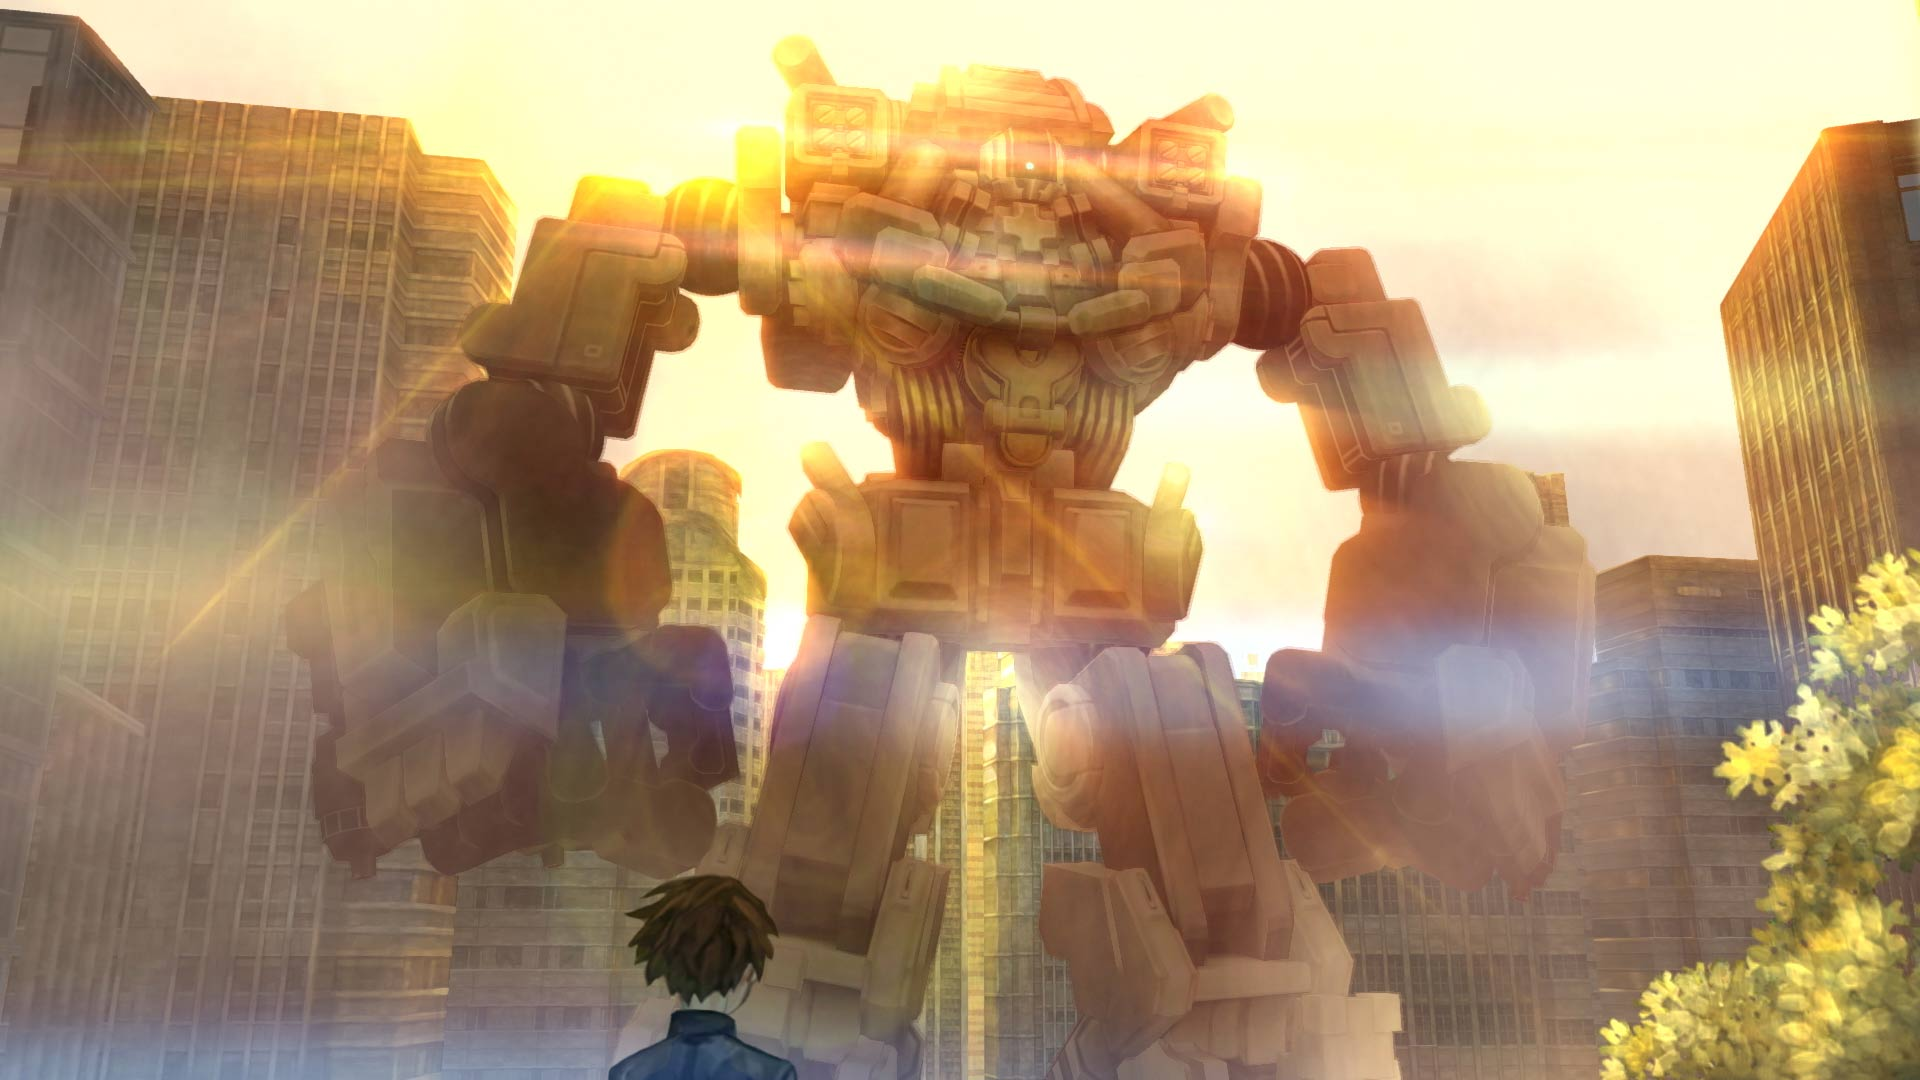 13 Sentinels: Aegis Rim - Screenshot 5